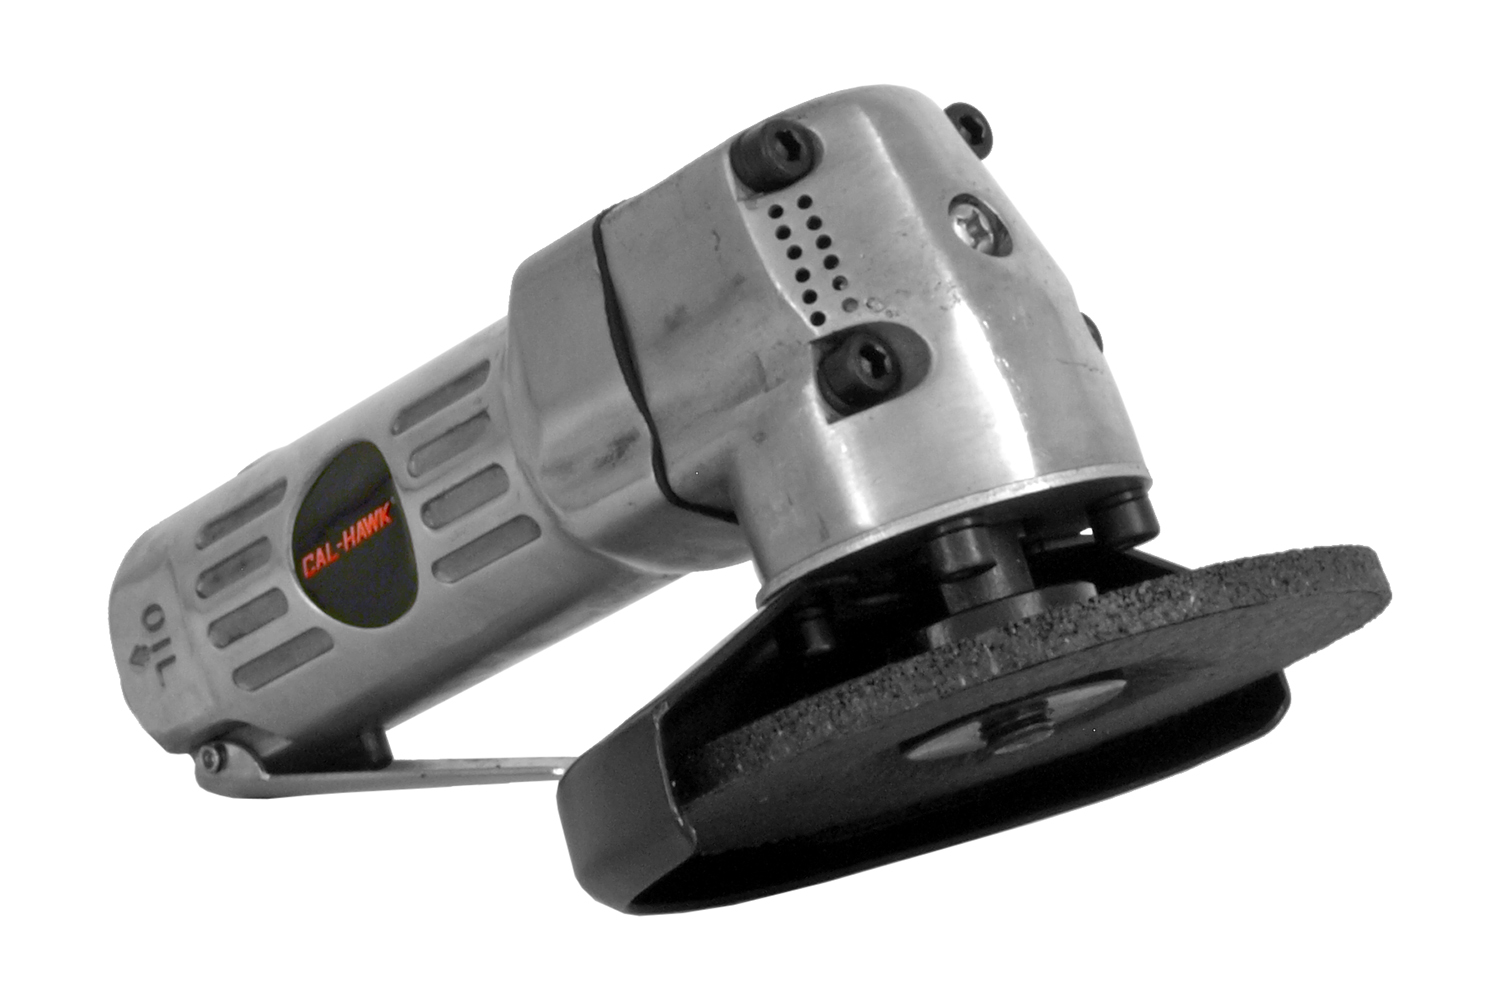 4 in Professional Air Angle Grinder - Cal-Hawk